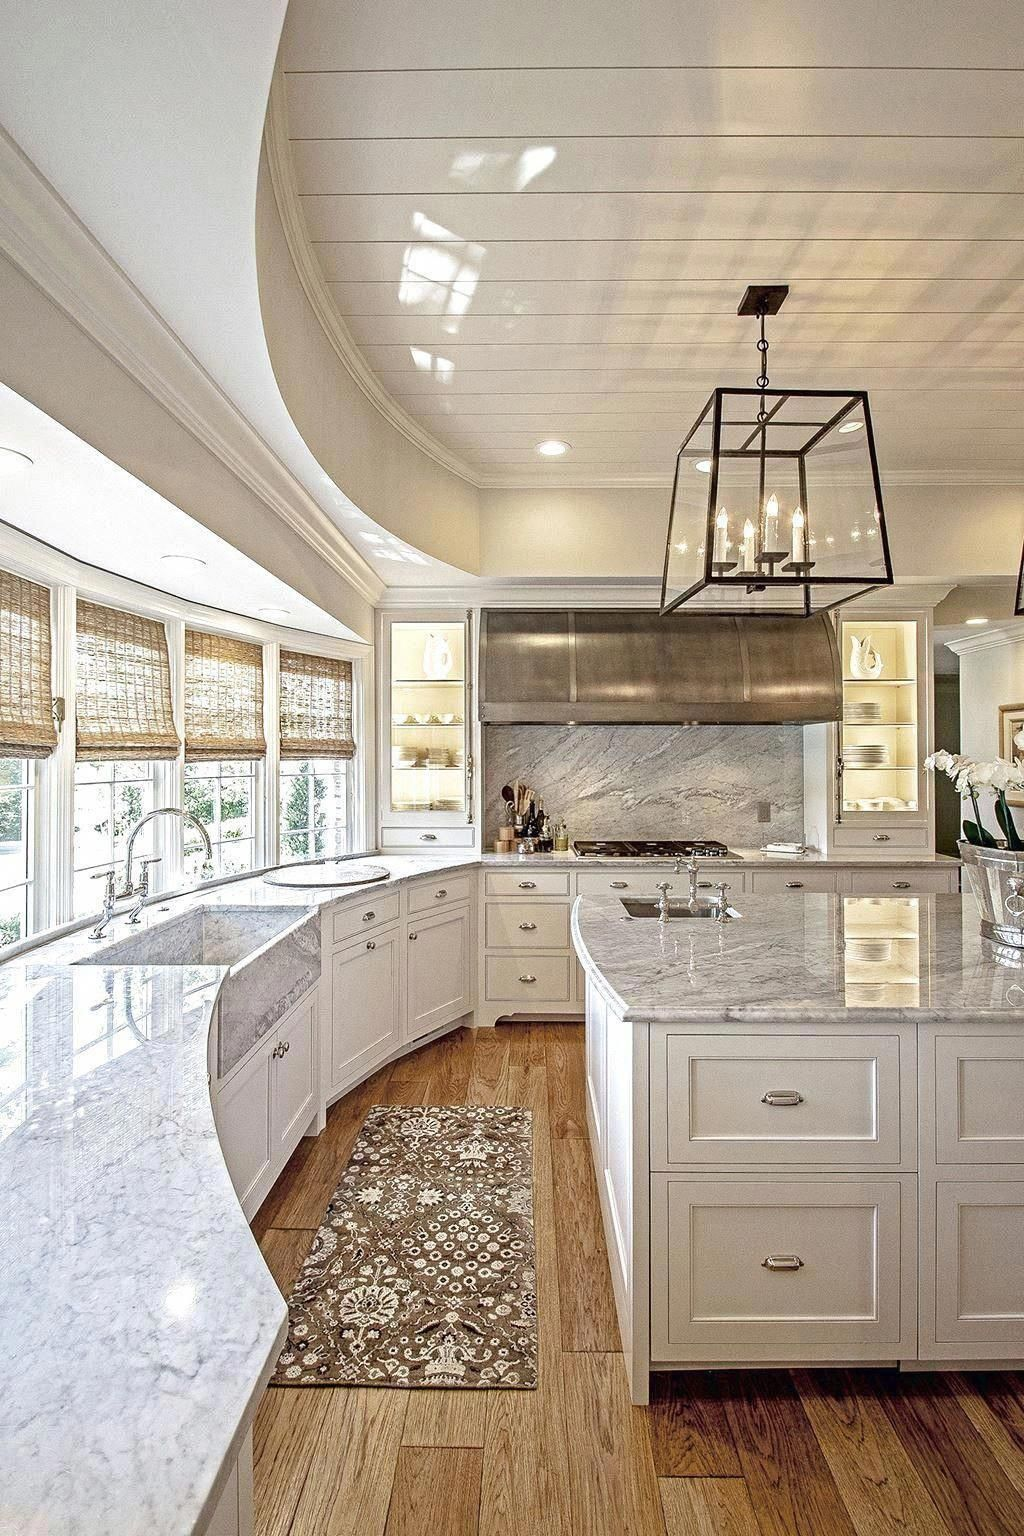 The L Shaped Kitchen Is Consisted Of 2 Adjoining Walls With Perpendicular Countertops Farmhouse Kitchen Remodel Kitchen Remodel Layout Kitchen Remodel Small